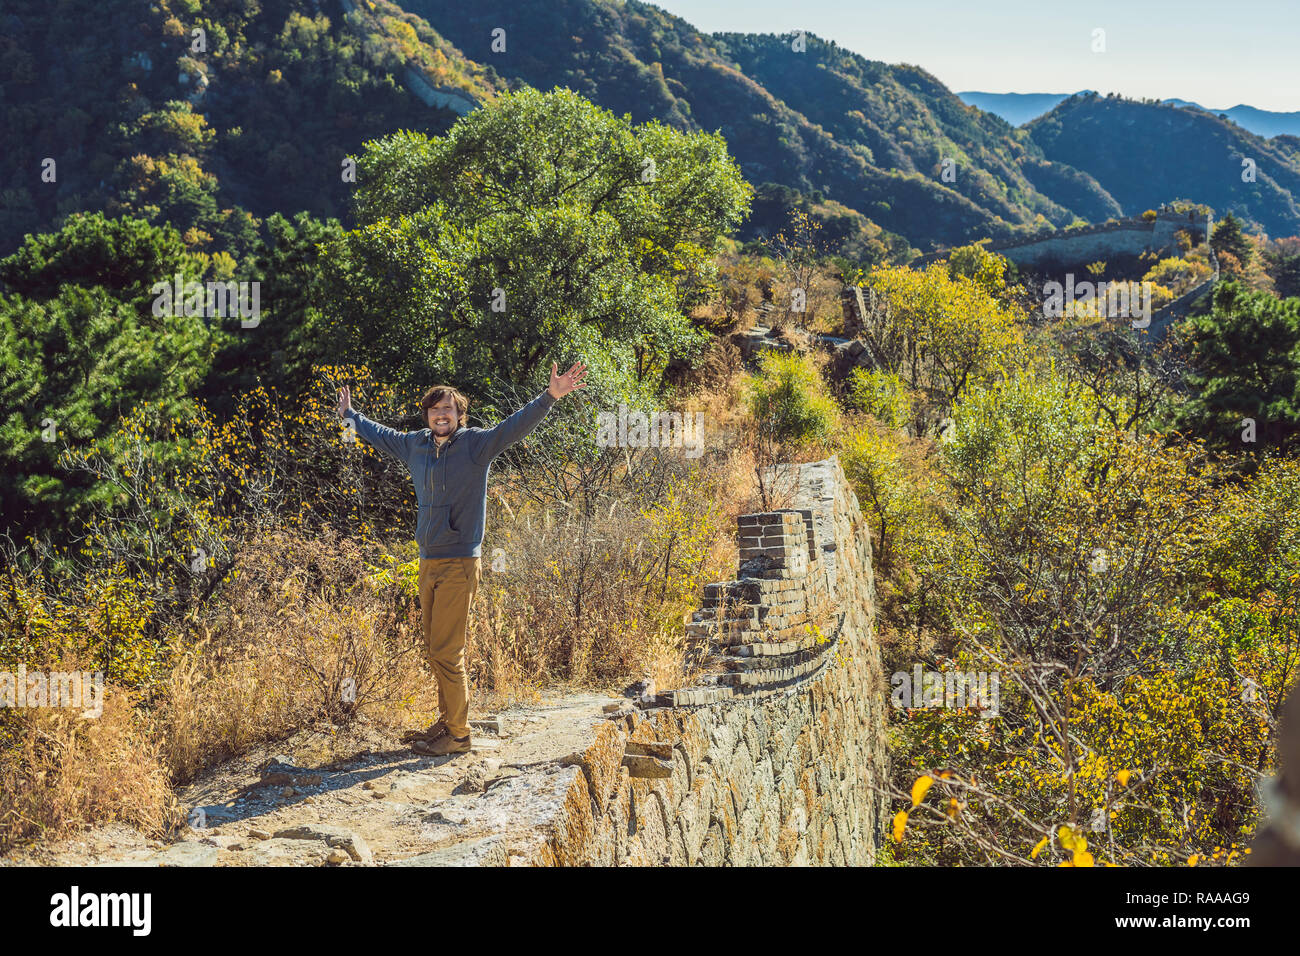 Happy Cheerful Joyful Tourist Man At Great Wall Of China Having Fun On Travel Smiling Laughing And Dancing During Vacation Trip In Asia Man Visiting And Sightseeing Chinese Destination Stock Photo